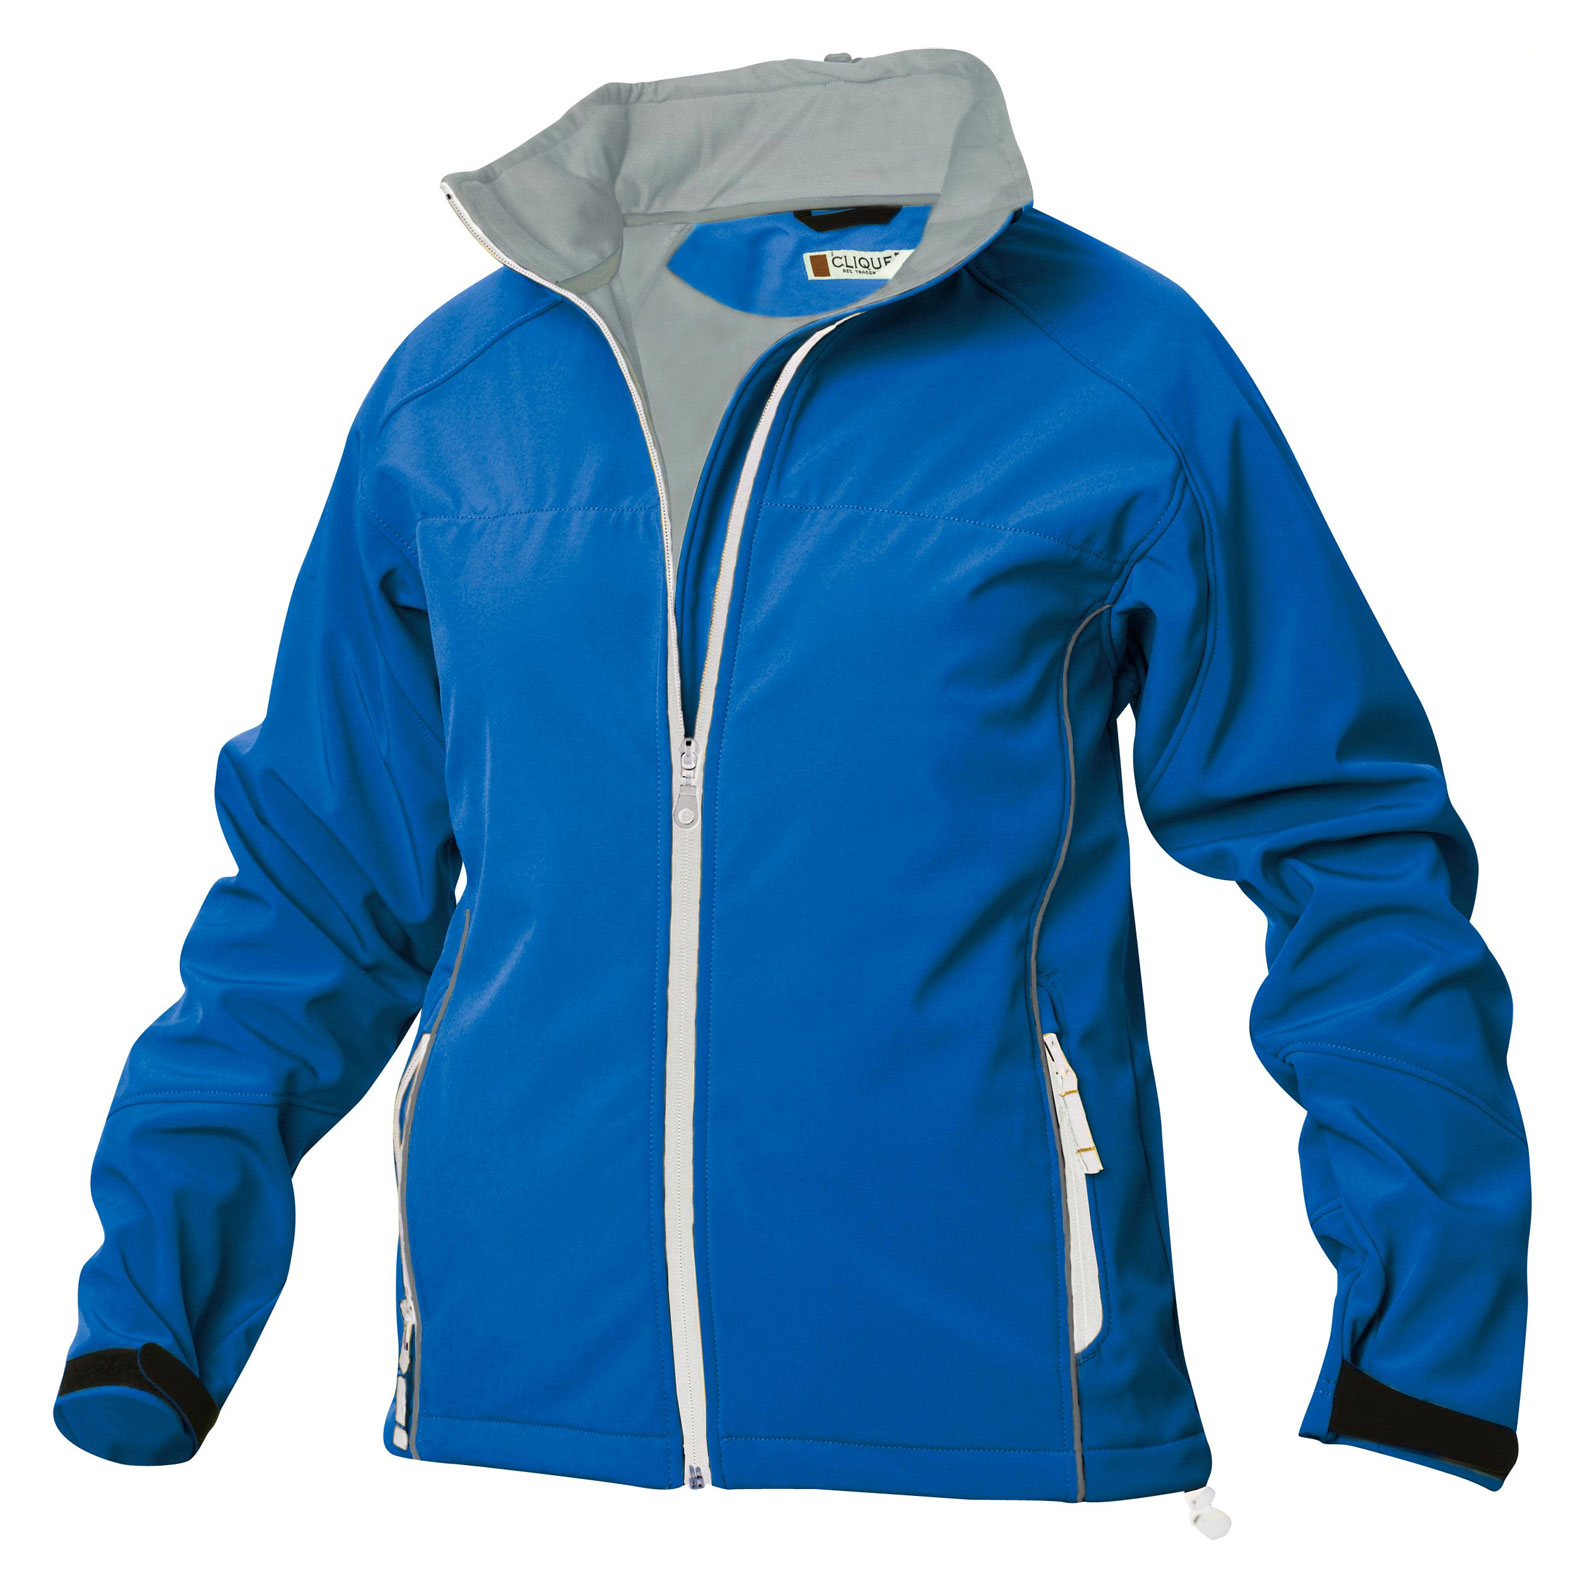 Ladies SOFTSHELL LADY Jacket by Clique